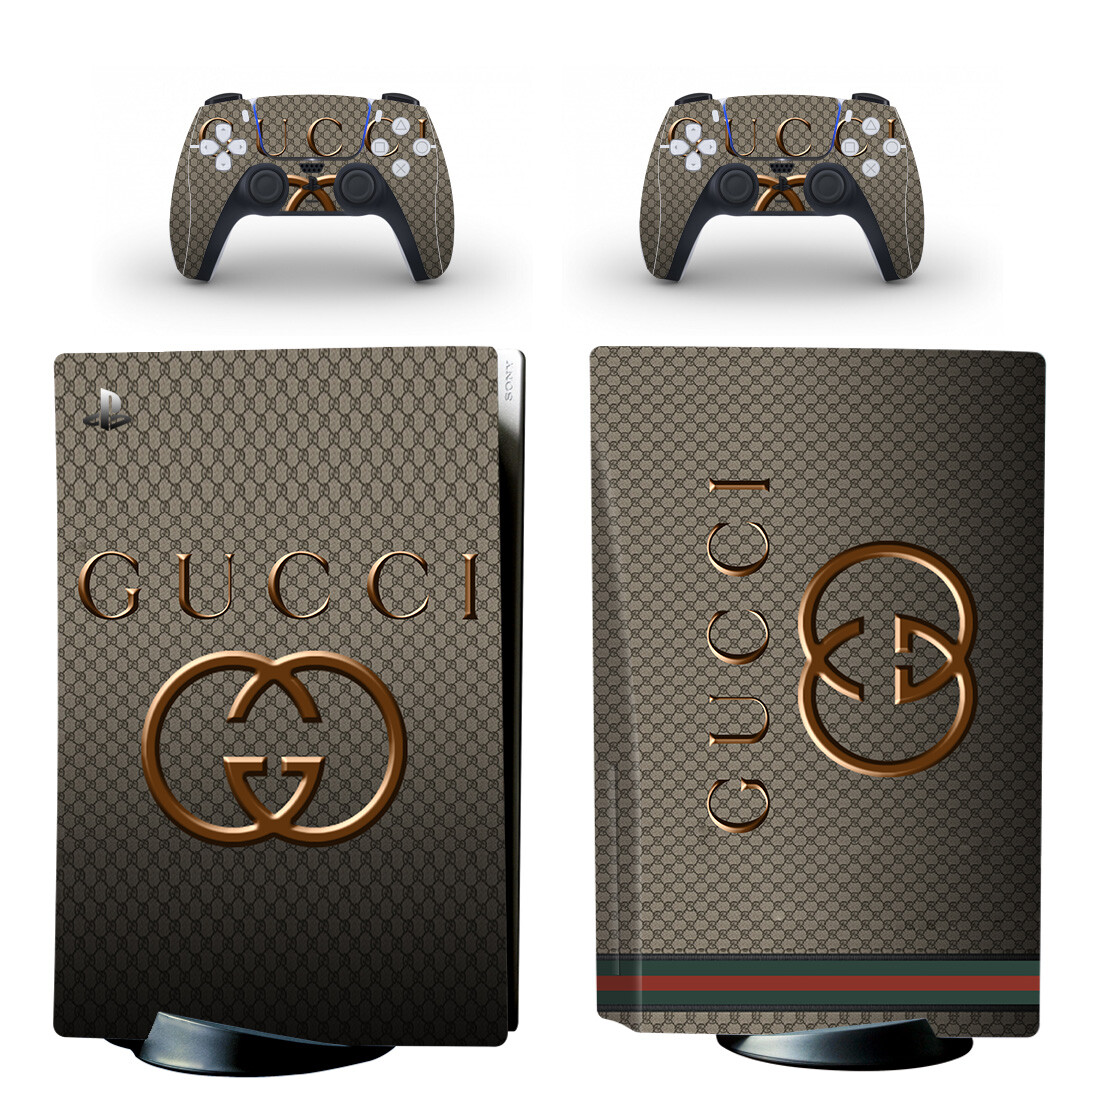 Gucci Skin Sticker Decal For PlayStation 5